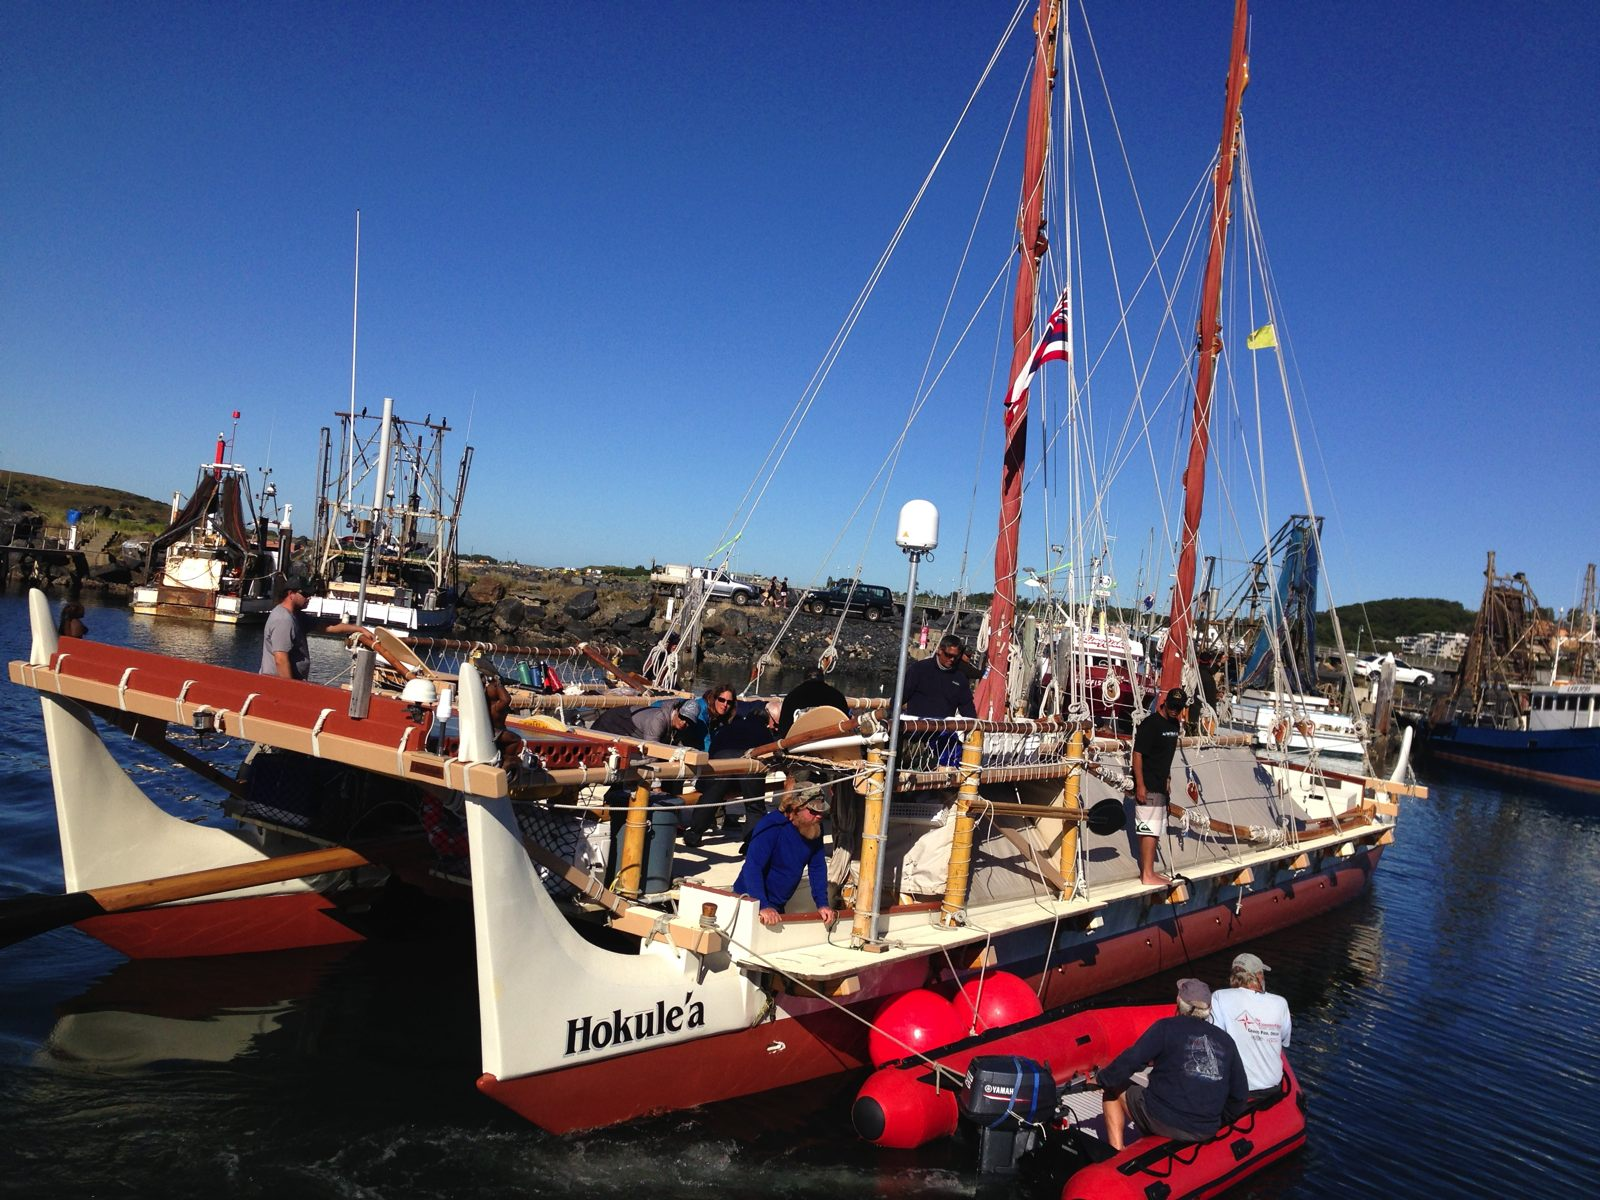 Hokulea in Coffs Harbour, Australia 2015